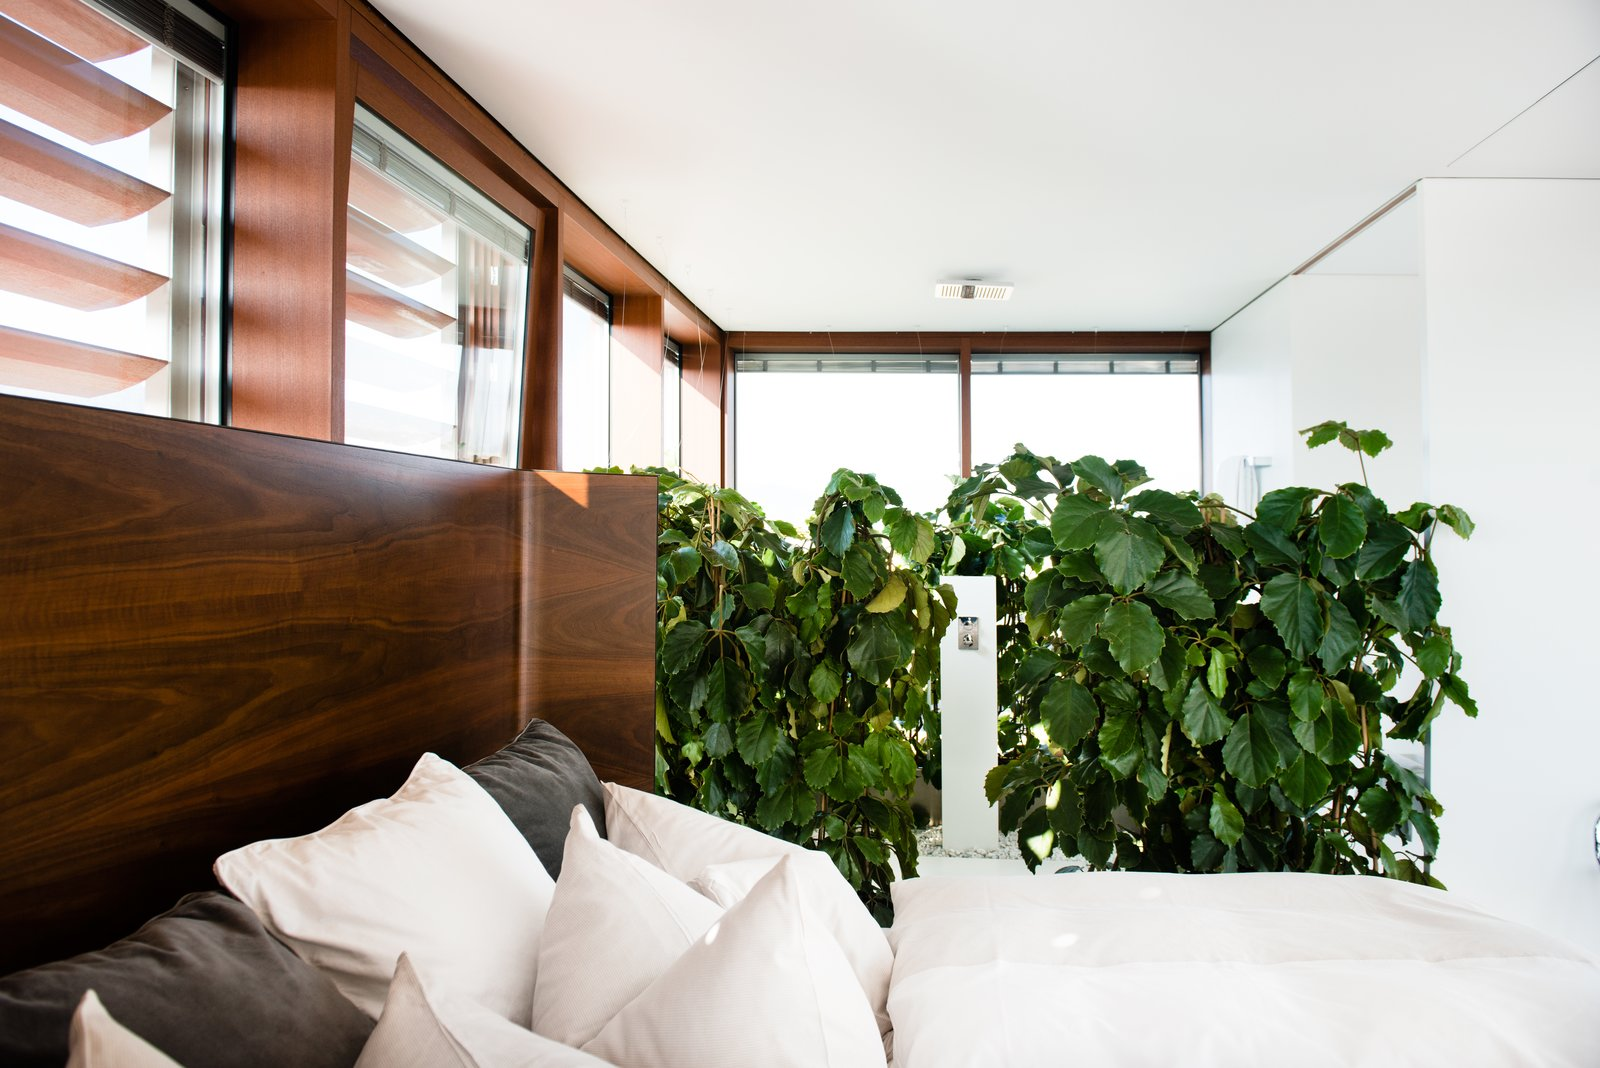 Bedroom and Bed  Photo 7 of 8 in Stay in a Prefab Cube Placed Atop a Midcentury Hotel in Austria